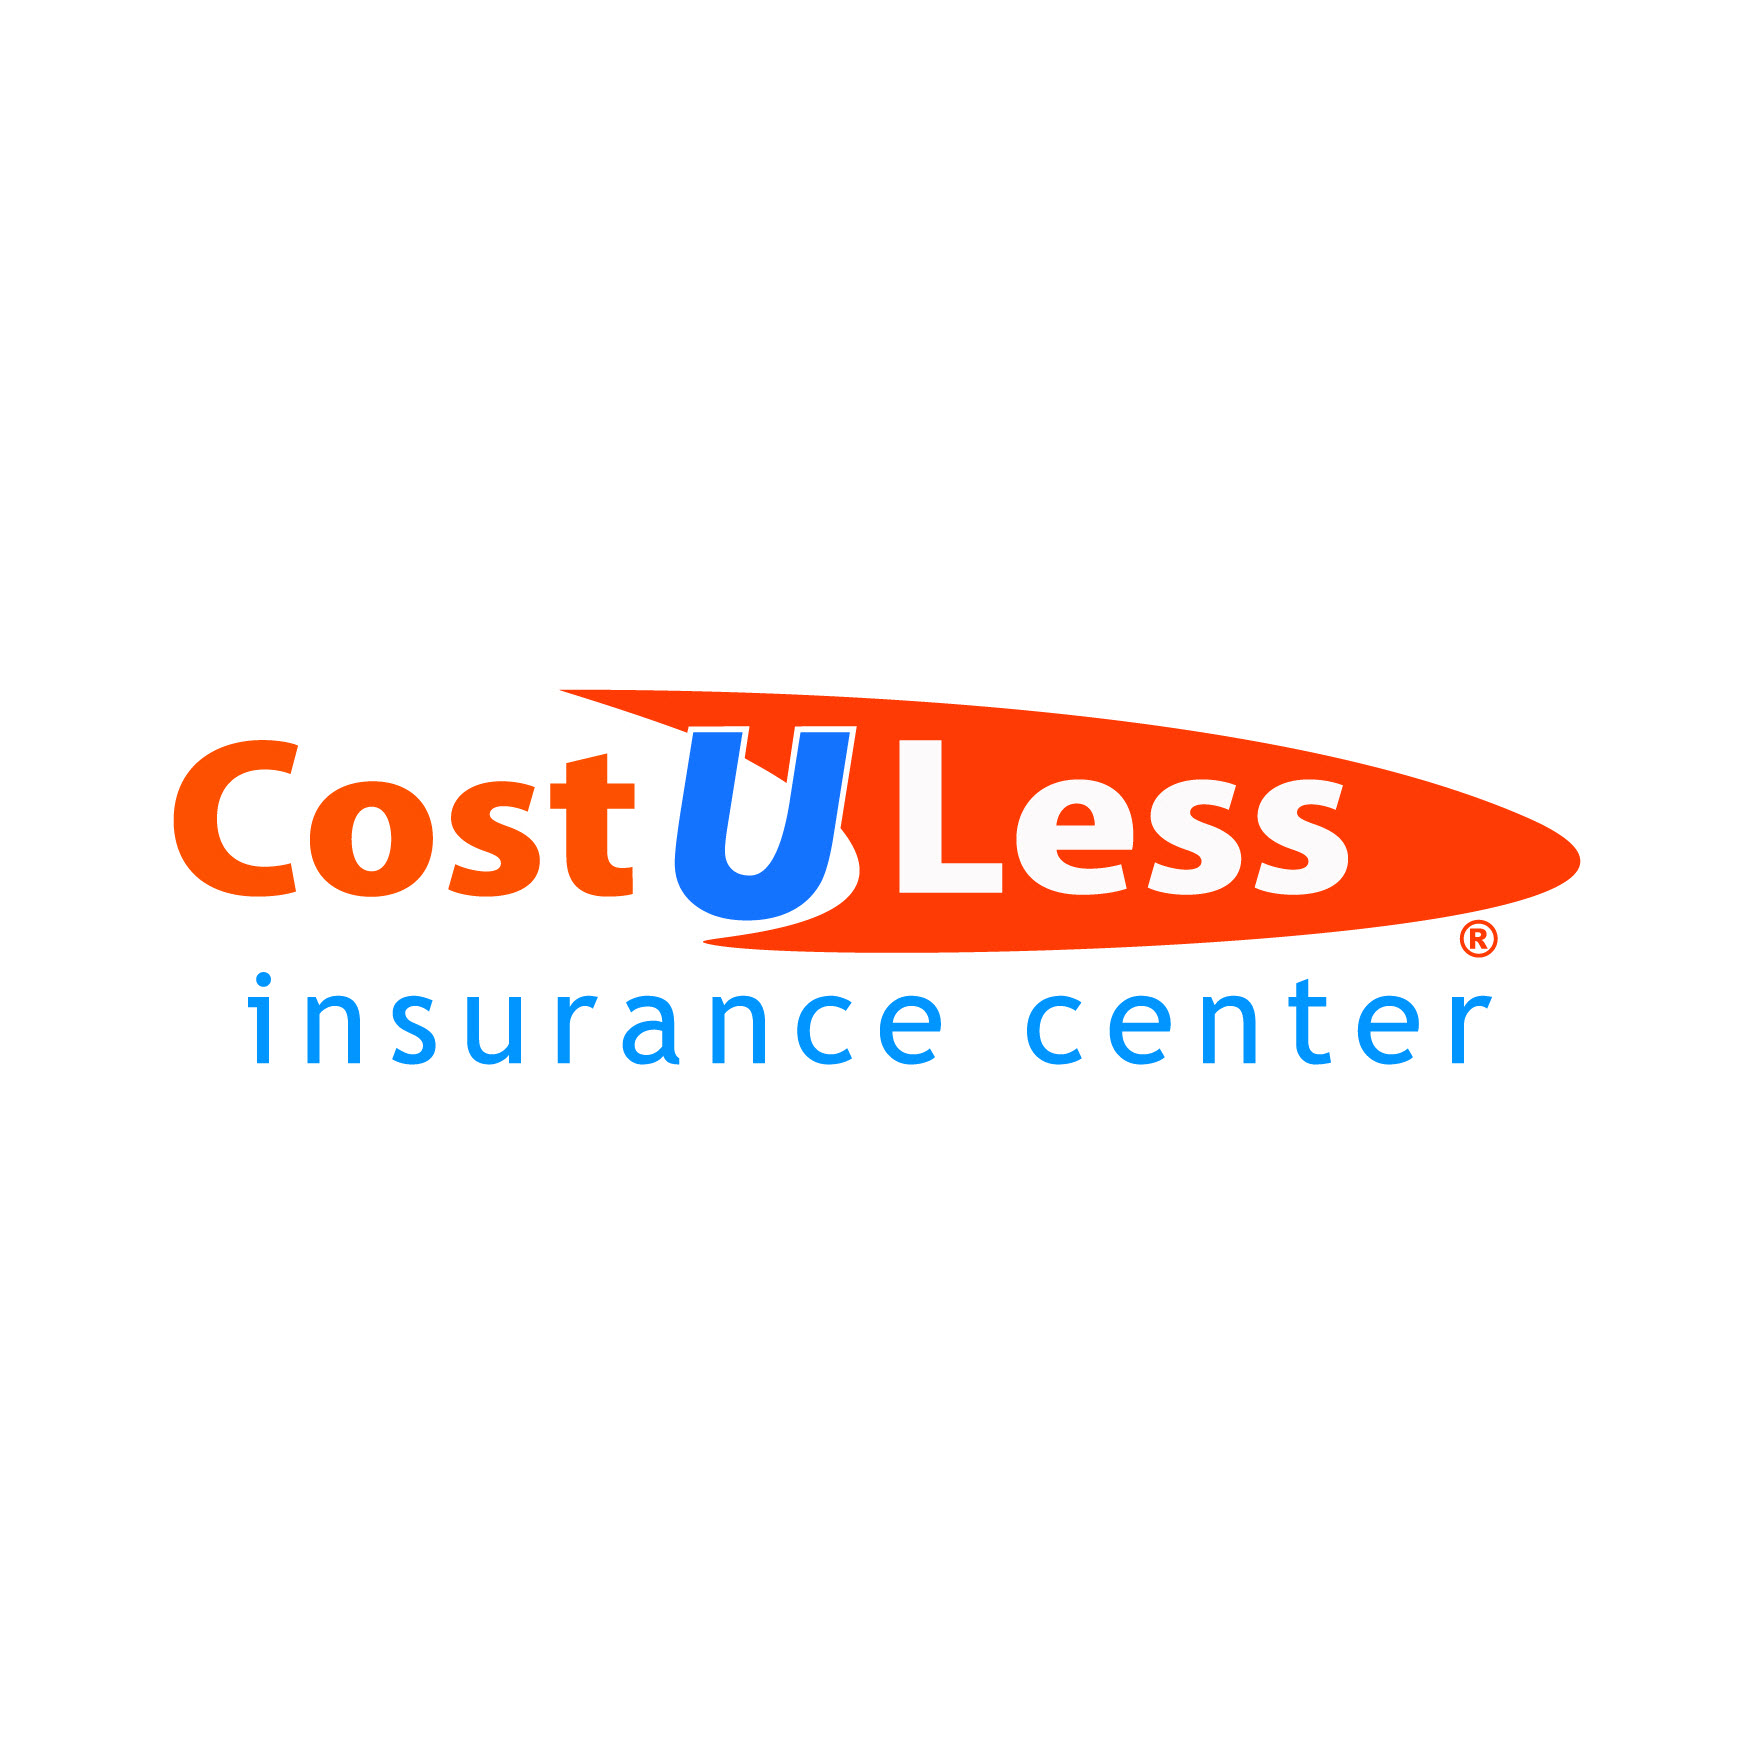 Costuless Insurance In Los Banos, Ca 93635. United Van Lines Moving Reviews. Best No Load Mutual Funds For Retirement. Cleaver Brooks Boilers Route Mapping Software. 2007 Ford Fusion Gas Mileage. Osu Ross Heart Hospital Online Hipaa Training. Keesler Afb Medical Center 30 Year Jumbo Rate. Tidewater Finance Company Pool Service Dallas. Garage Door Repair Marietta Square Web Site